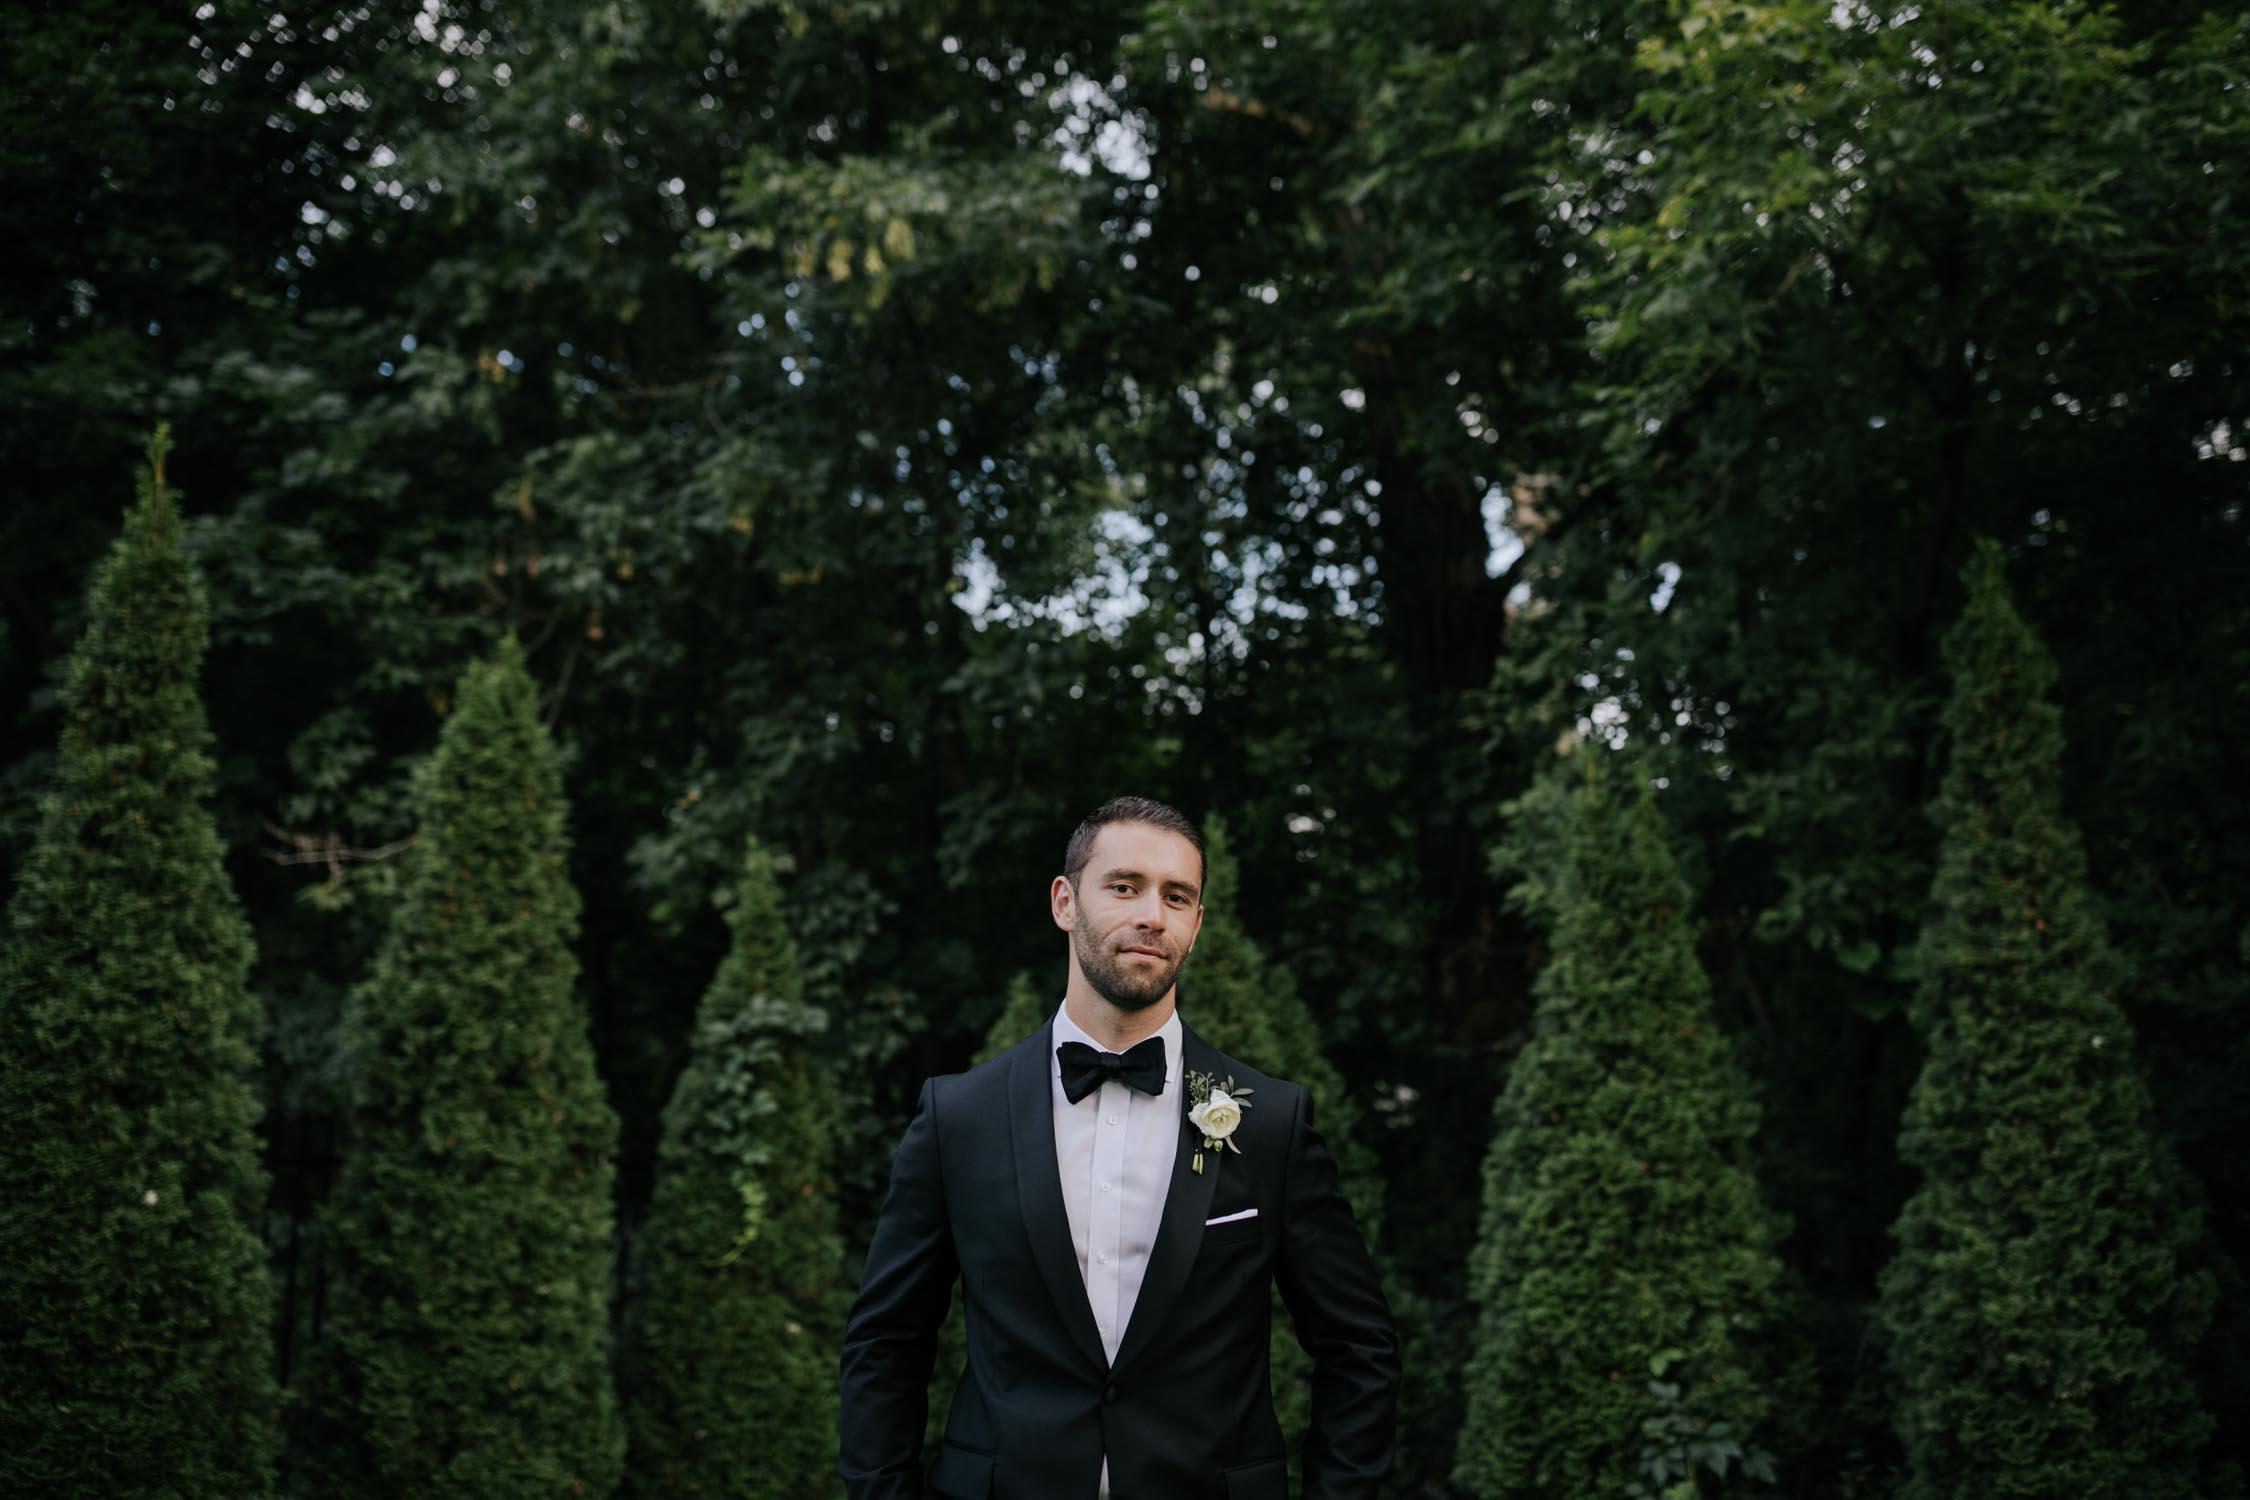 Groom portrait at Madsen's Greenhouse wedding venue in Newmarket close to Toronto